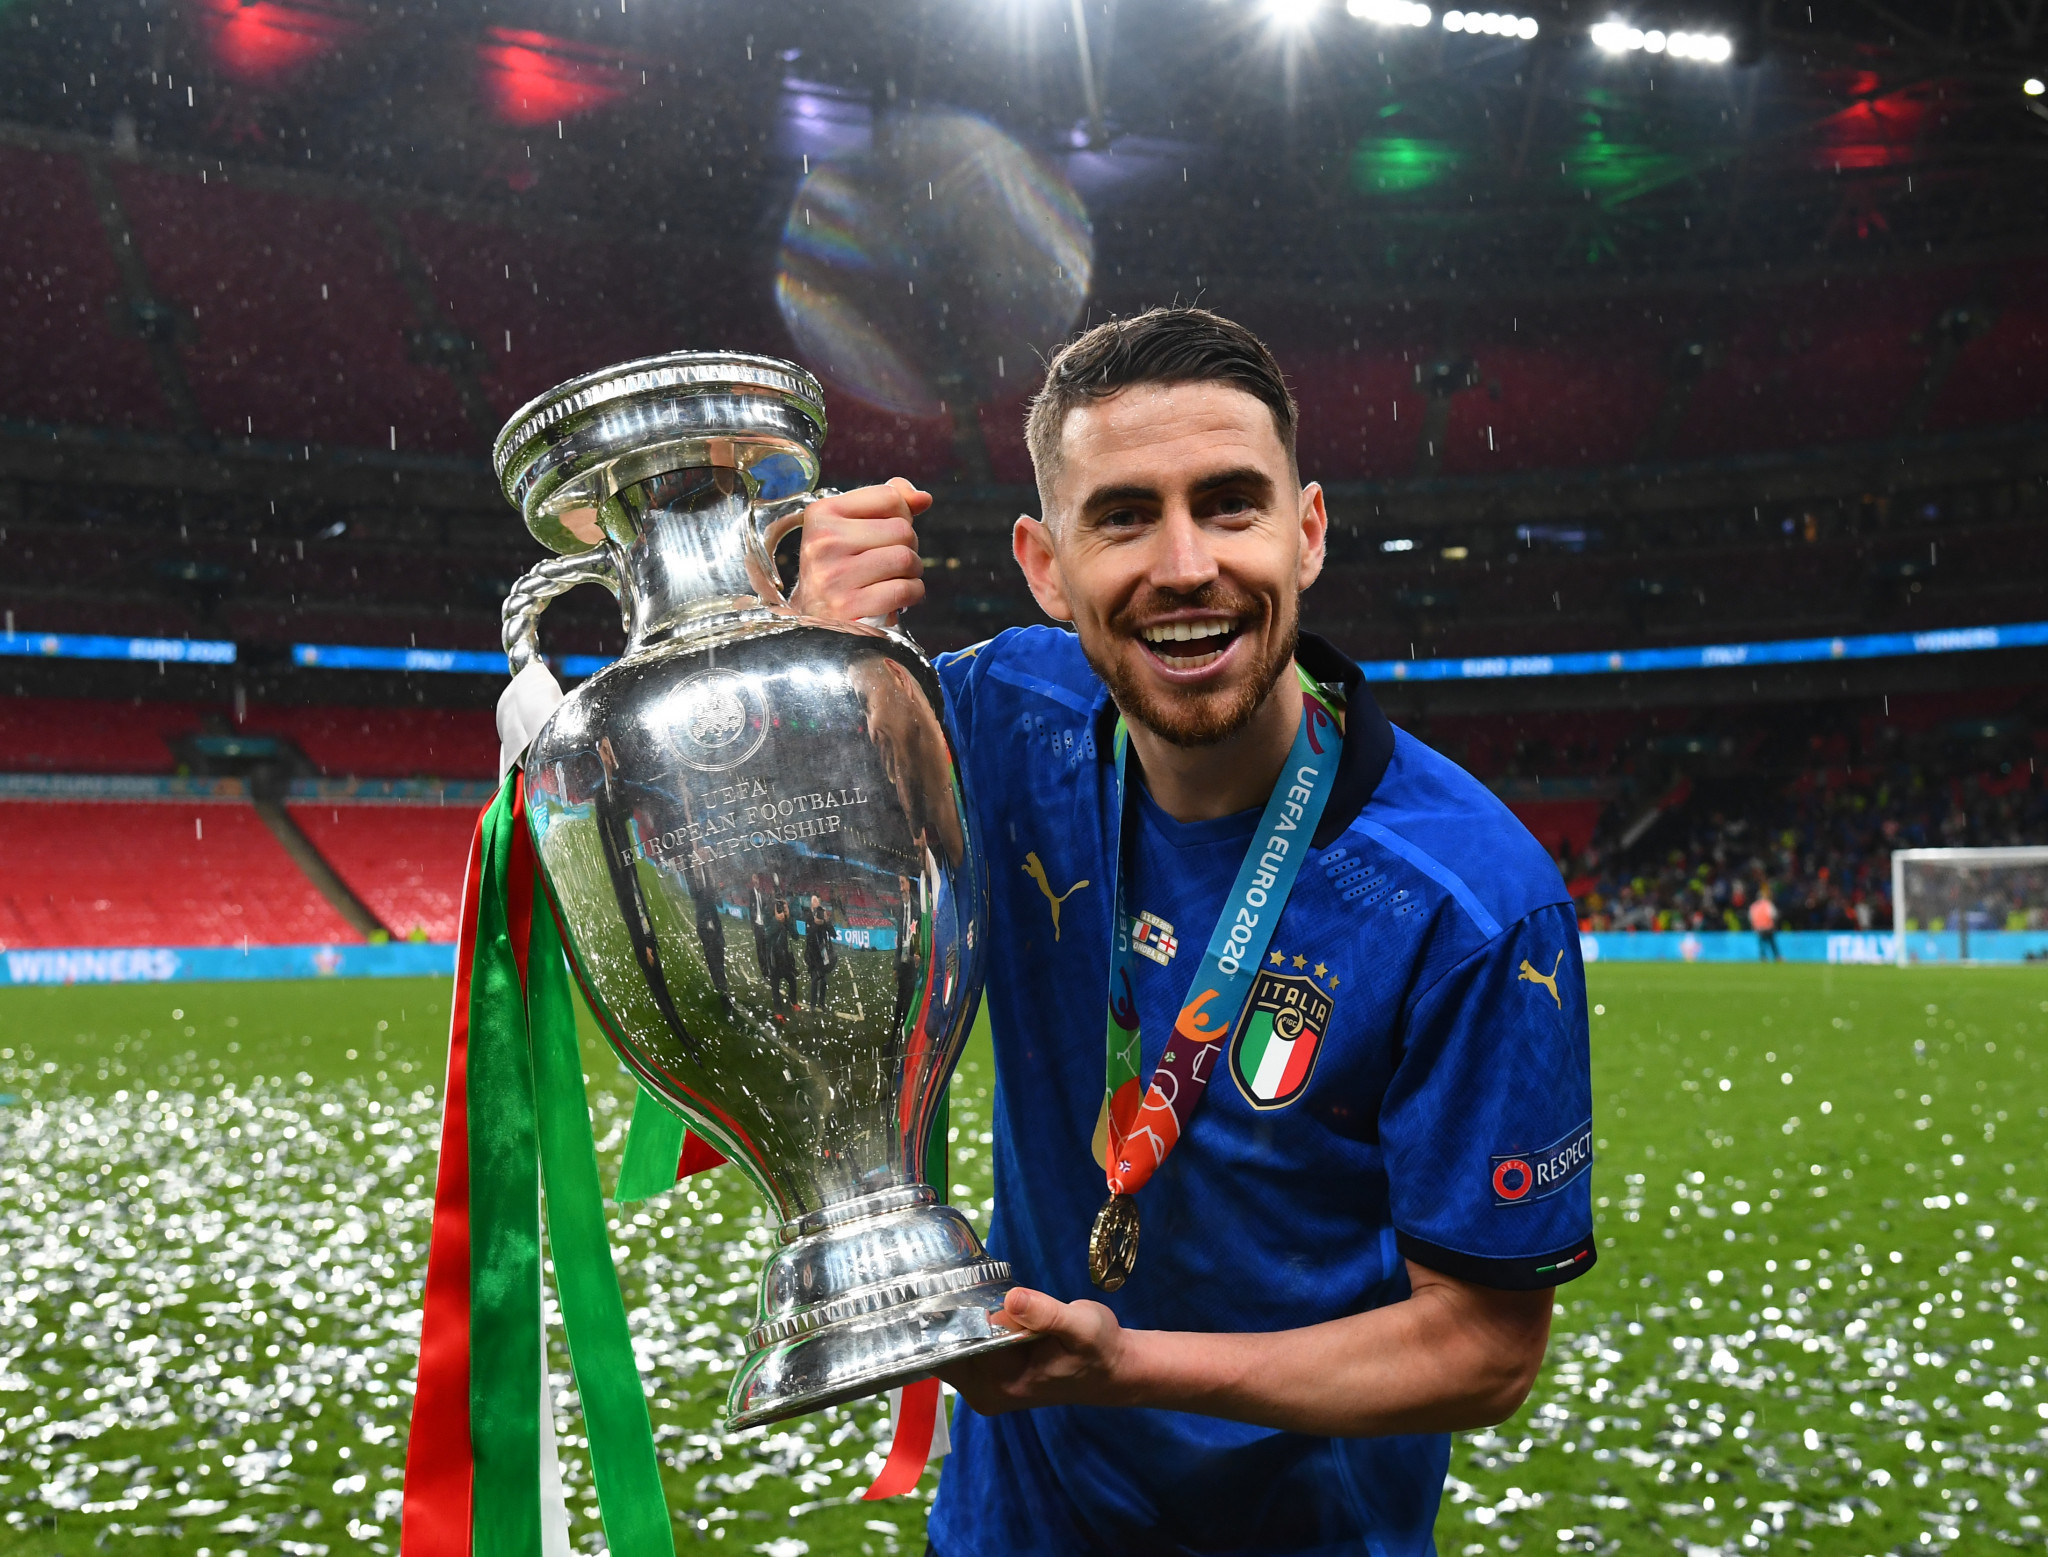 Jorginho and Hermoso tipped for success as nominees revealed for 2020-2021 UEFA Player and Coach of the Year Awards